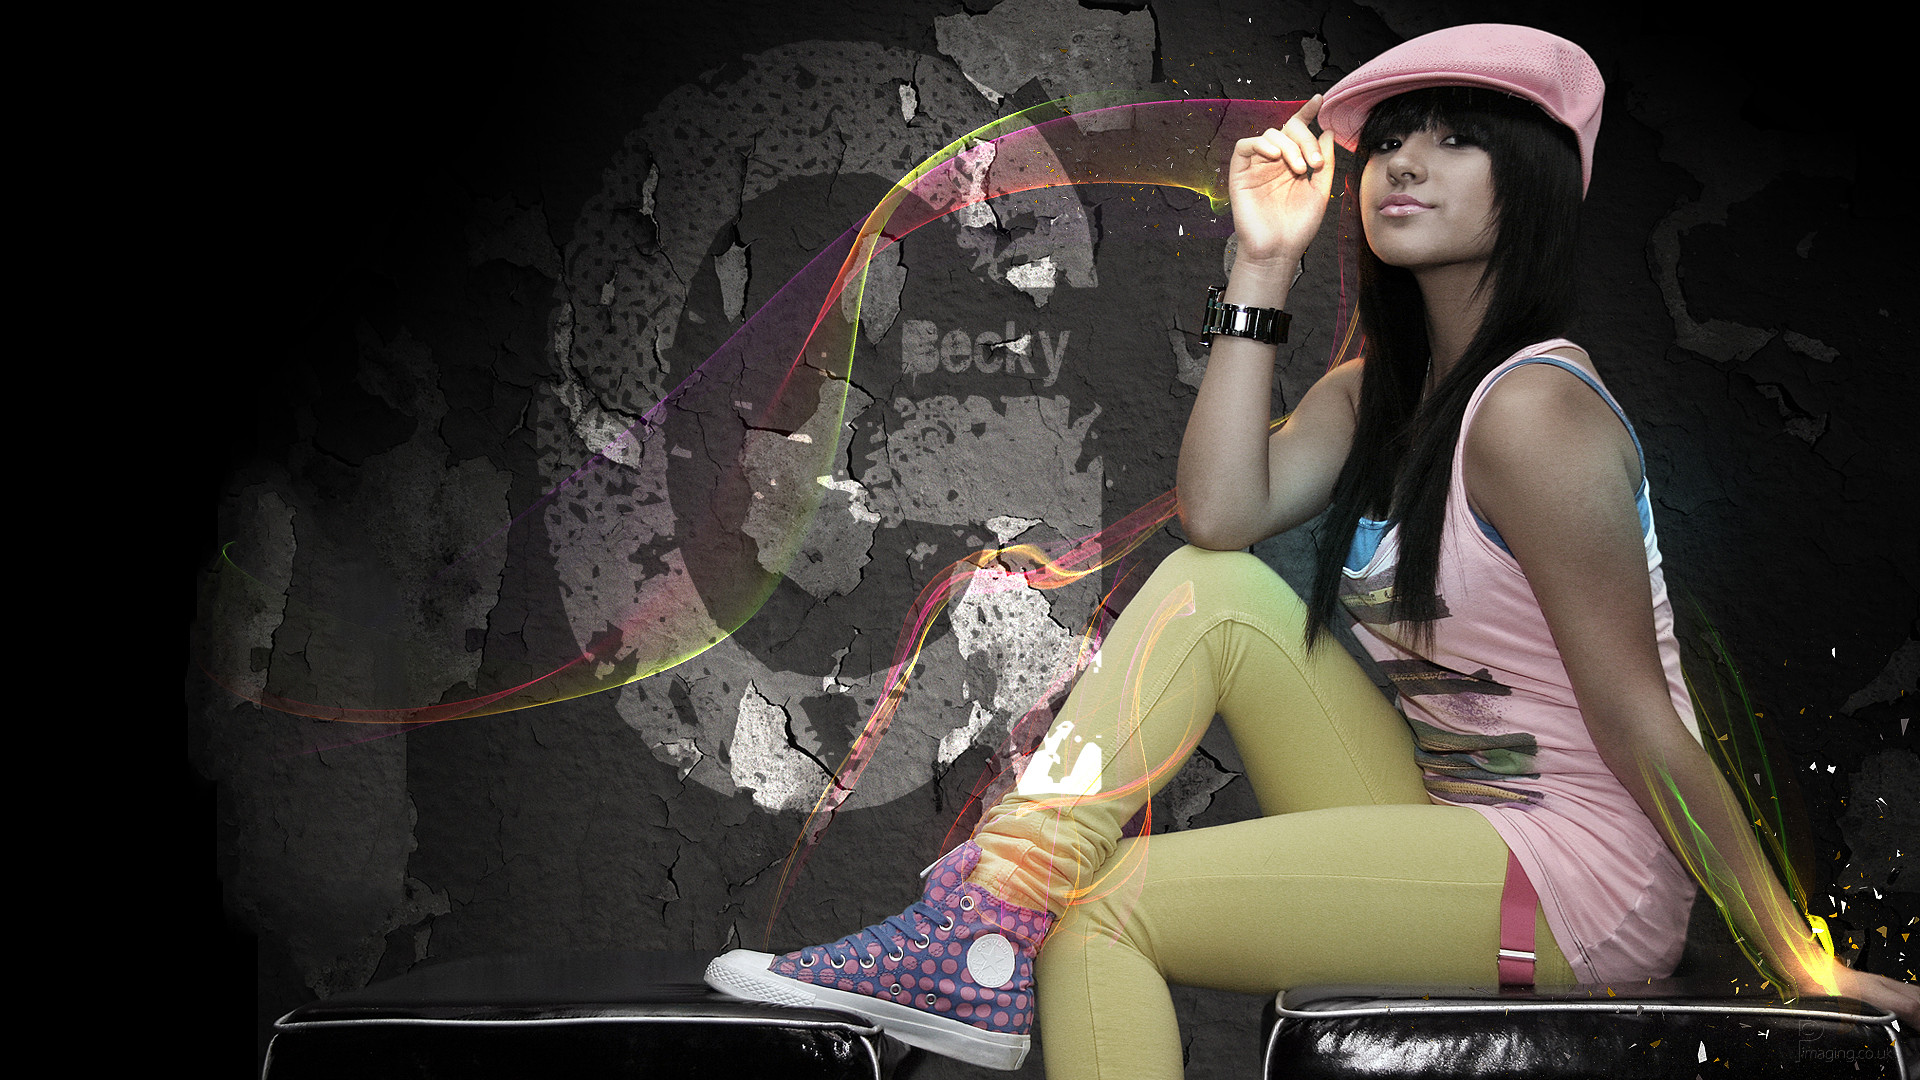 Res: 1920x1080, Becky G 2013 wallpaper High Quality WallpapersWallpaper Desktop